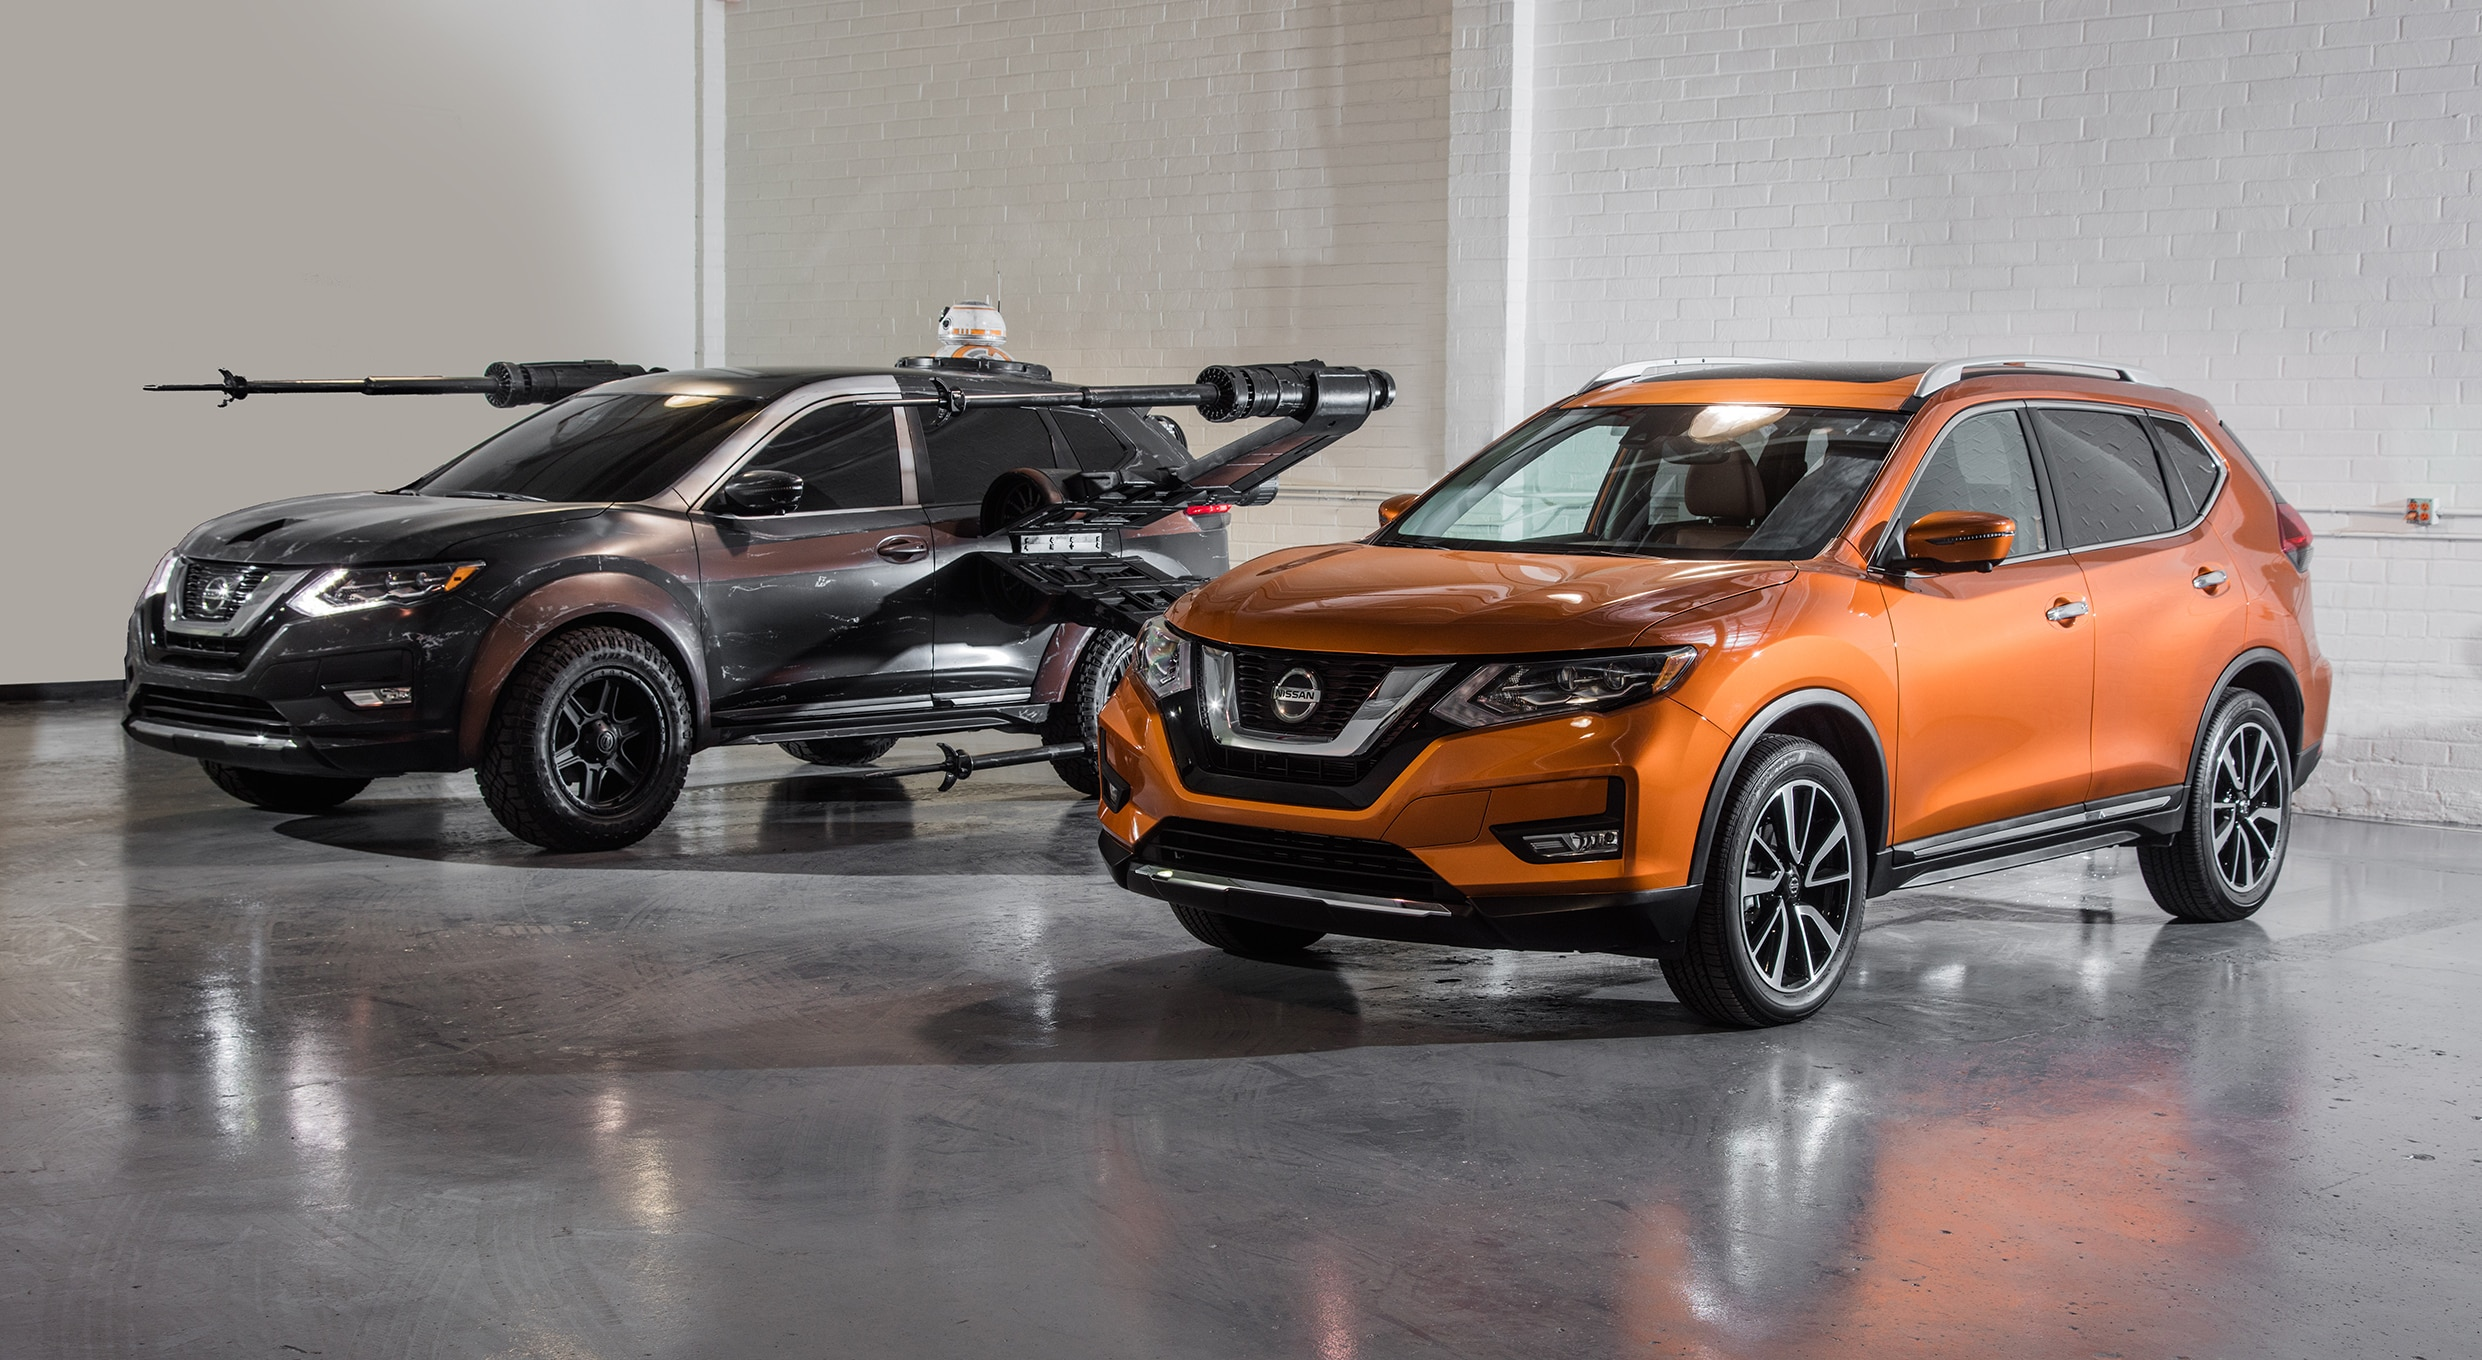 2018 Nissan Rogue Show Car Poe Damerons X Wing With BB 8 And Original Rogue